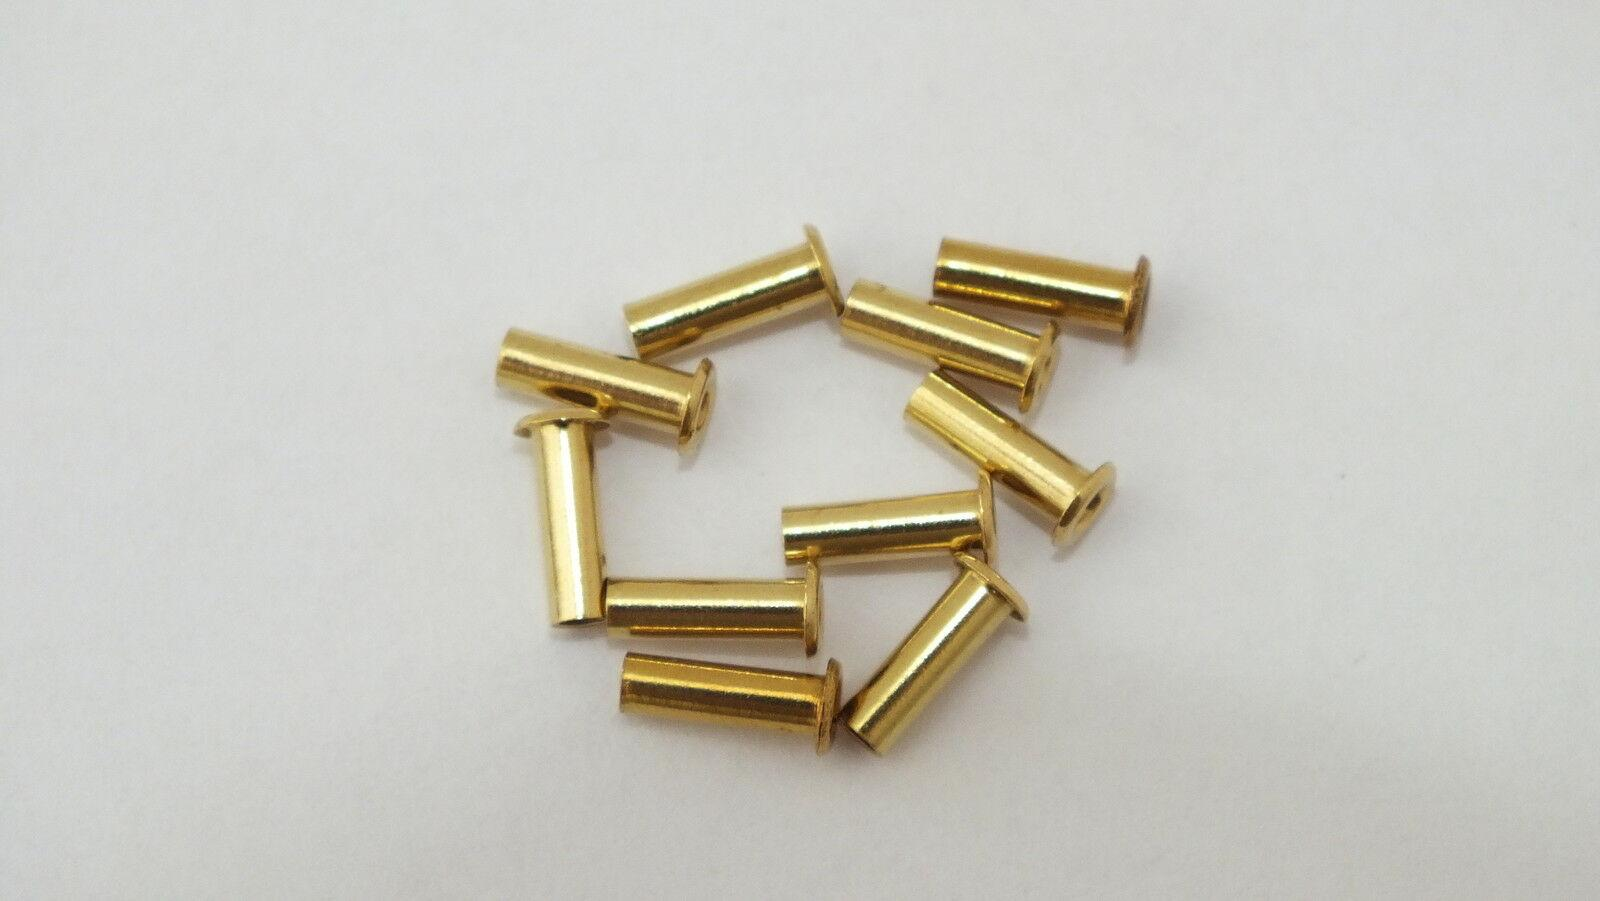 S5102/S5251 # 10 x hornby triang spare parts eyelet rivet H3C